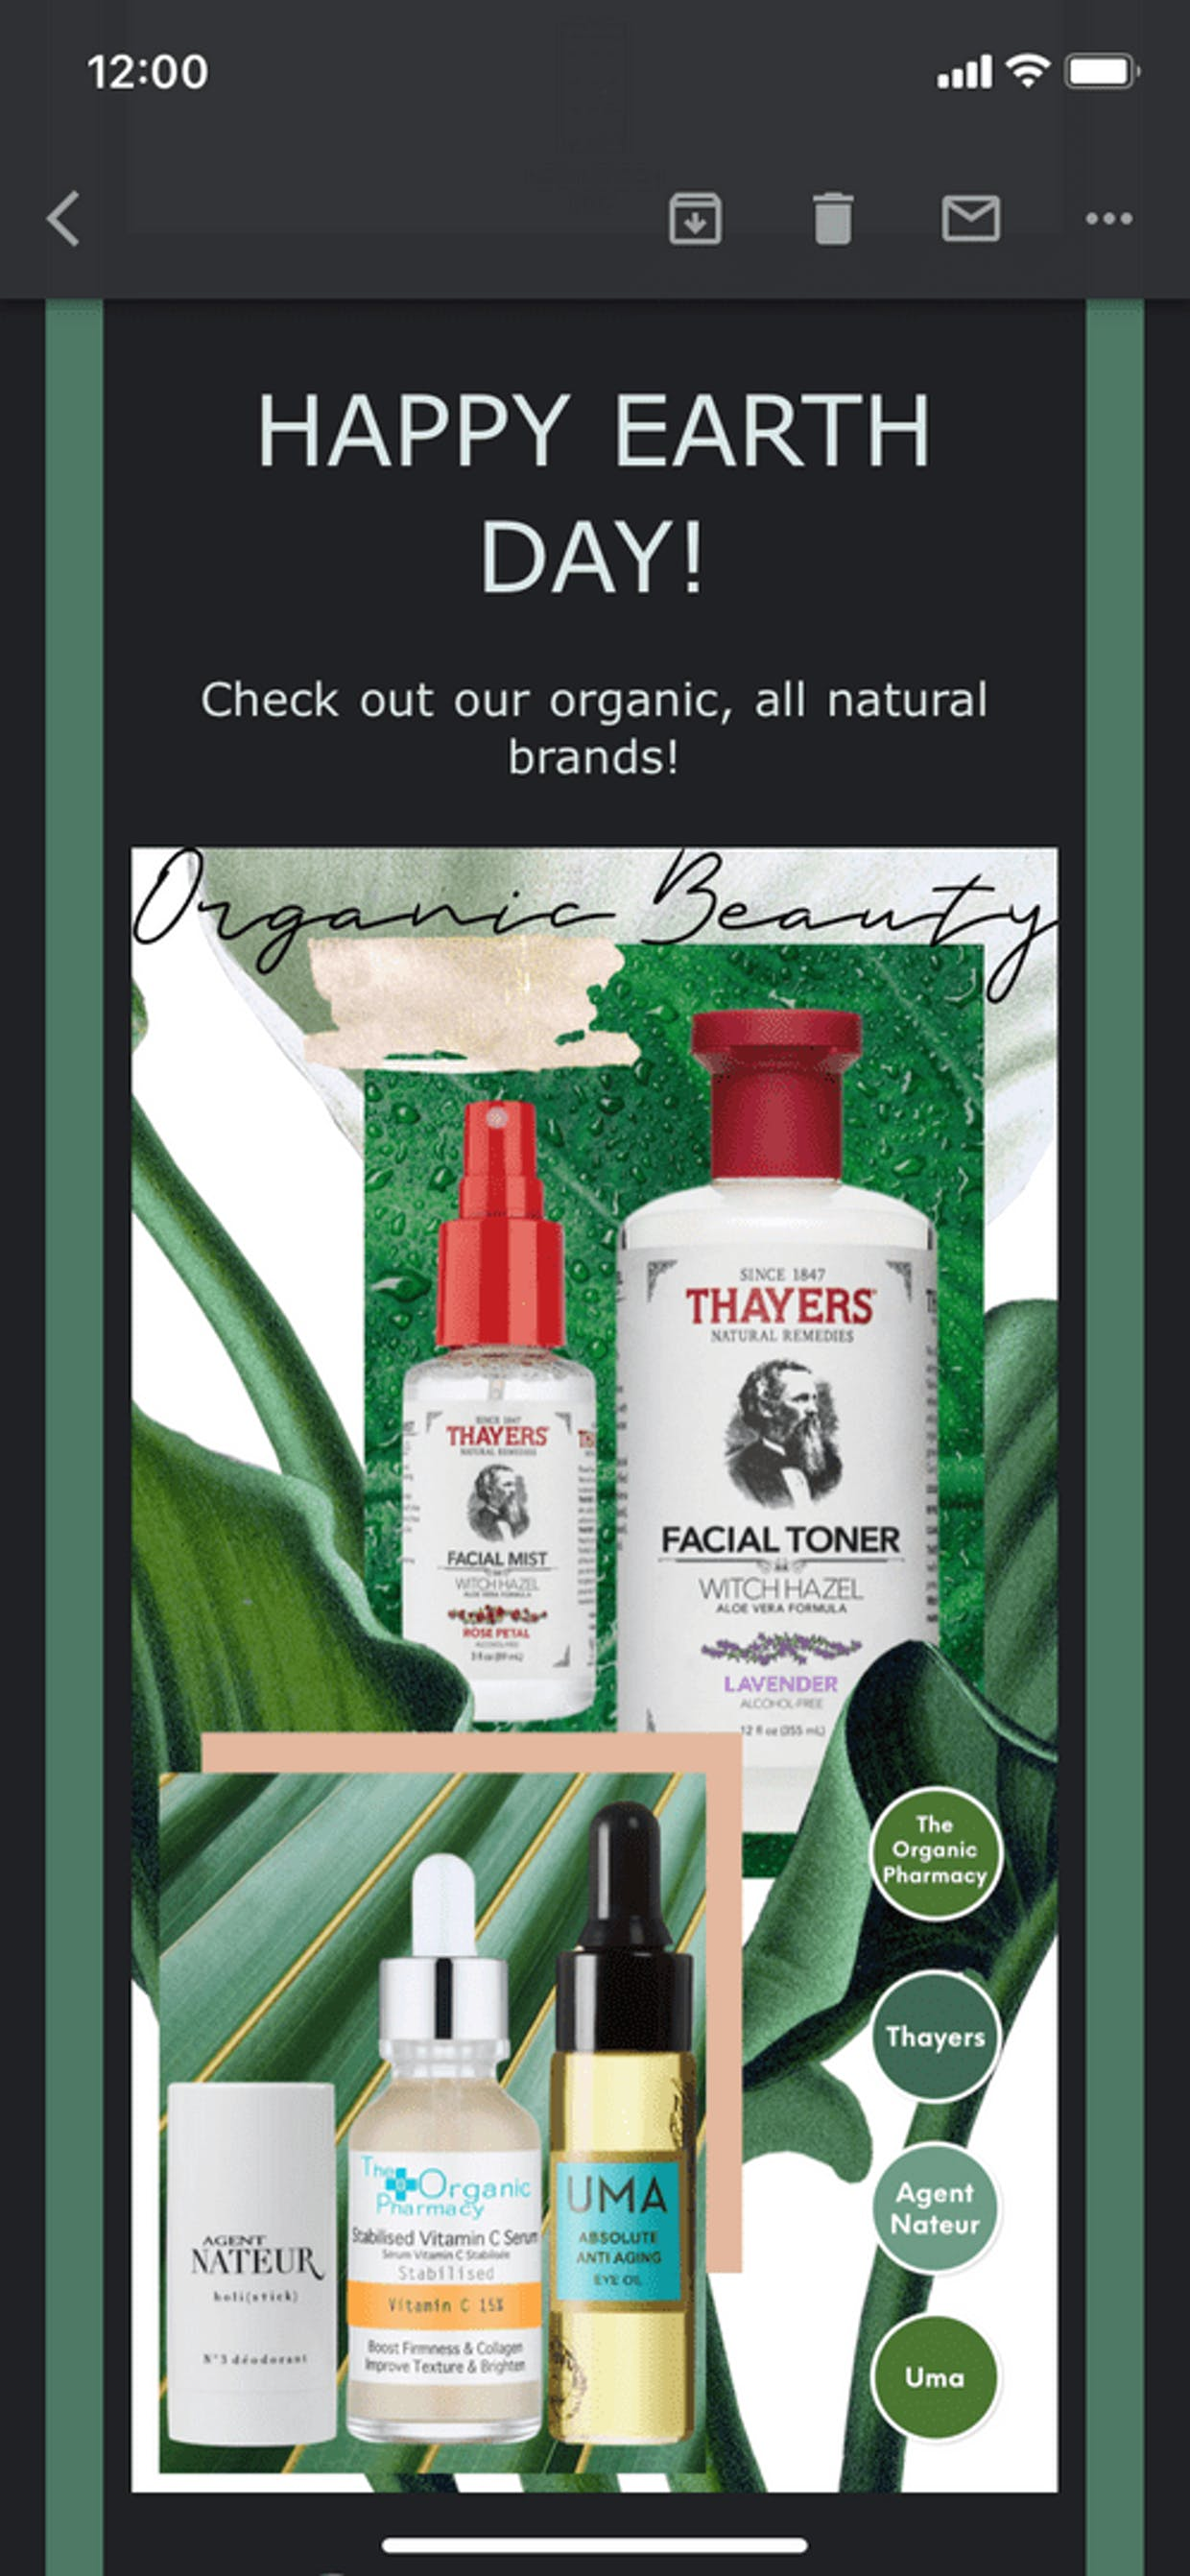 I actually use Thayers, it's great to know they are all natural.